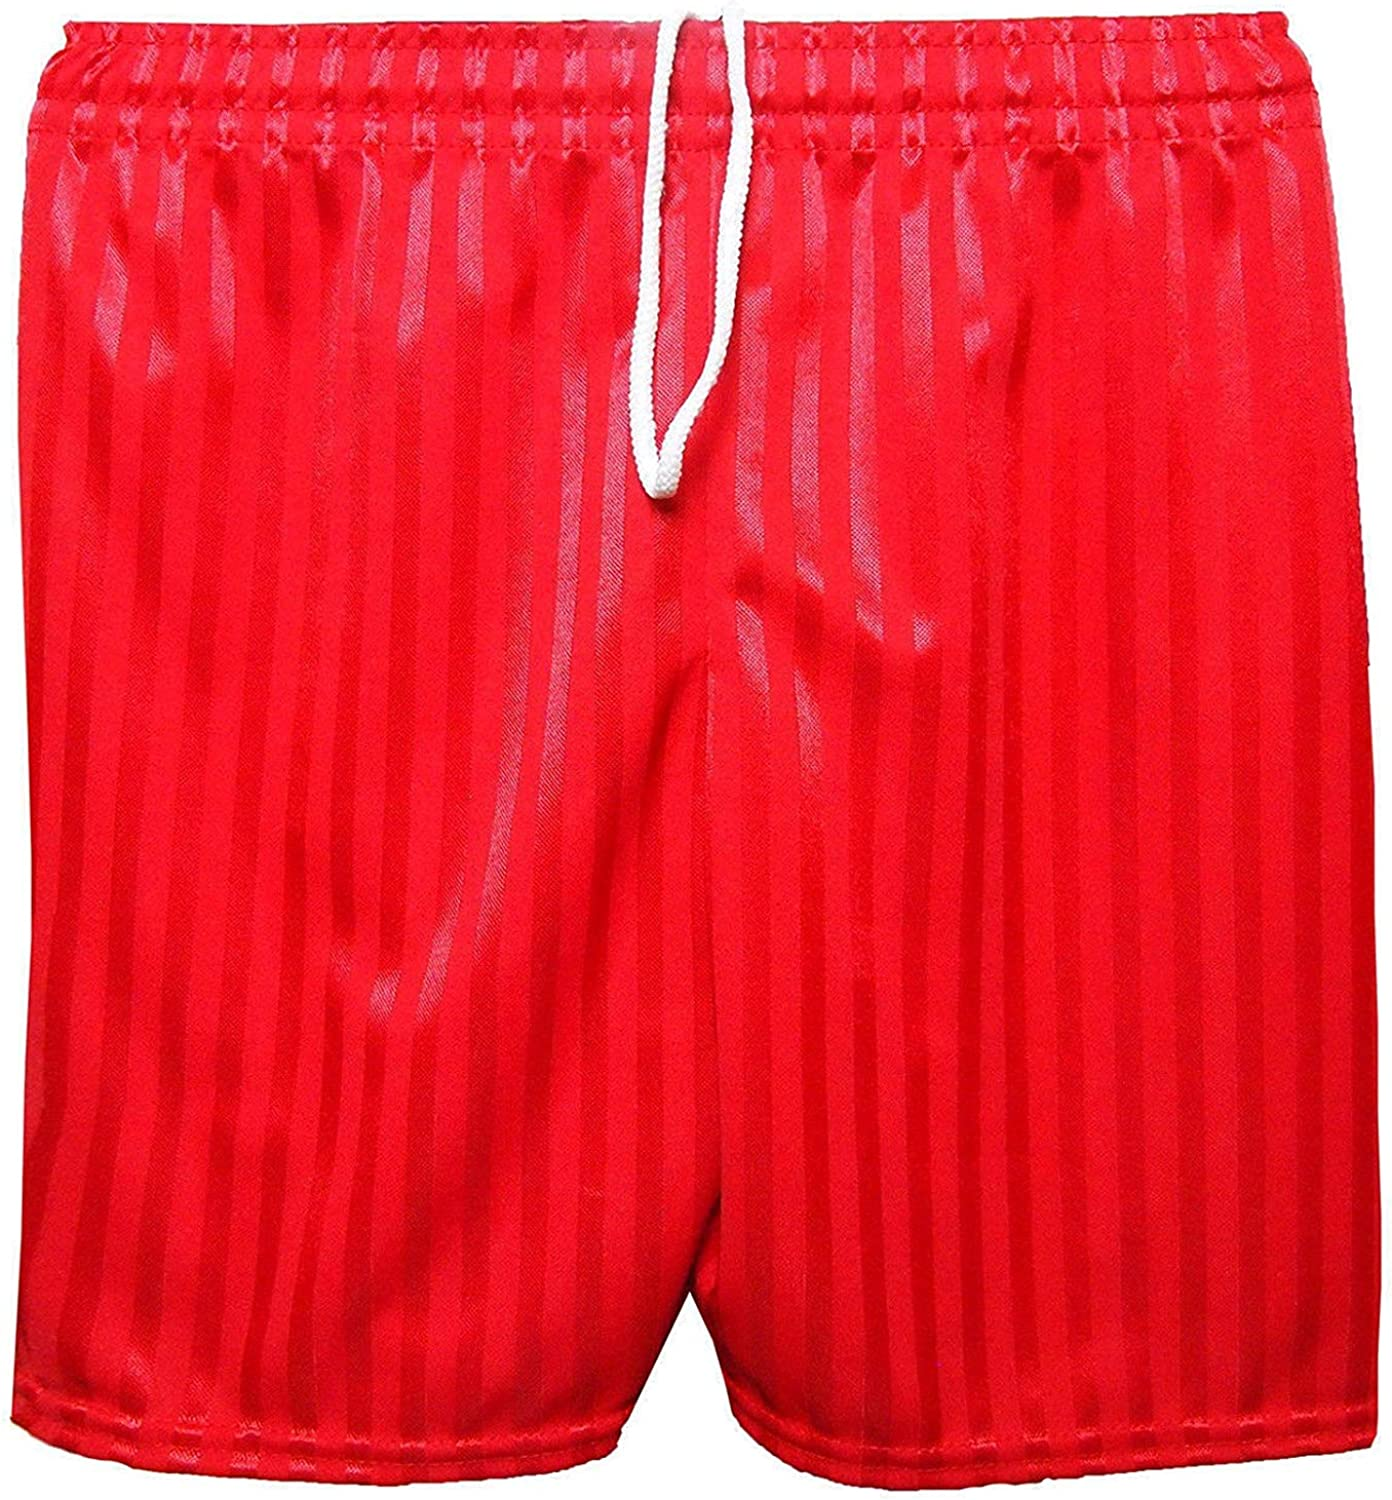 Pull Up Short MyShoeStore Unisex PE Shorts Boys Girls Kids Children Adults Back to School Uniform Shadow Stripe Sports Gym Football Games P.E